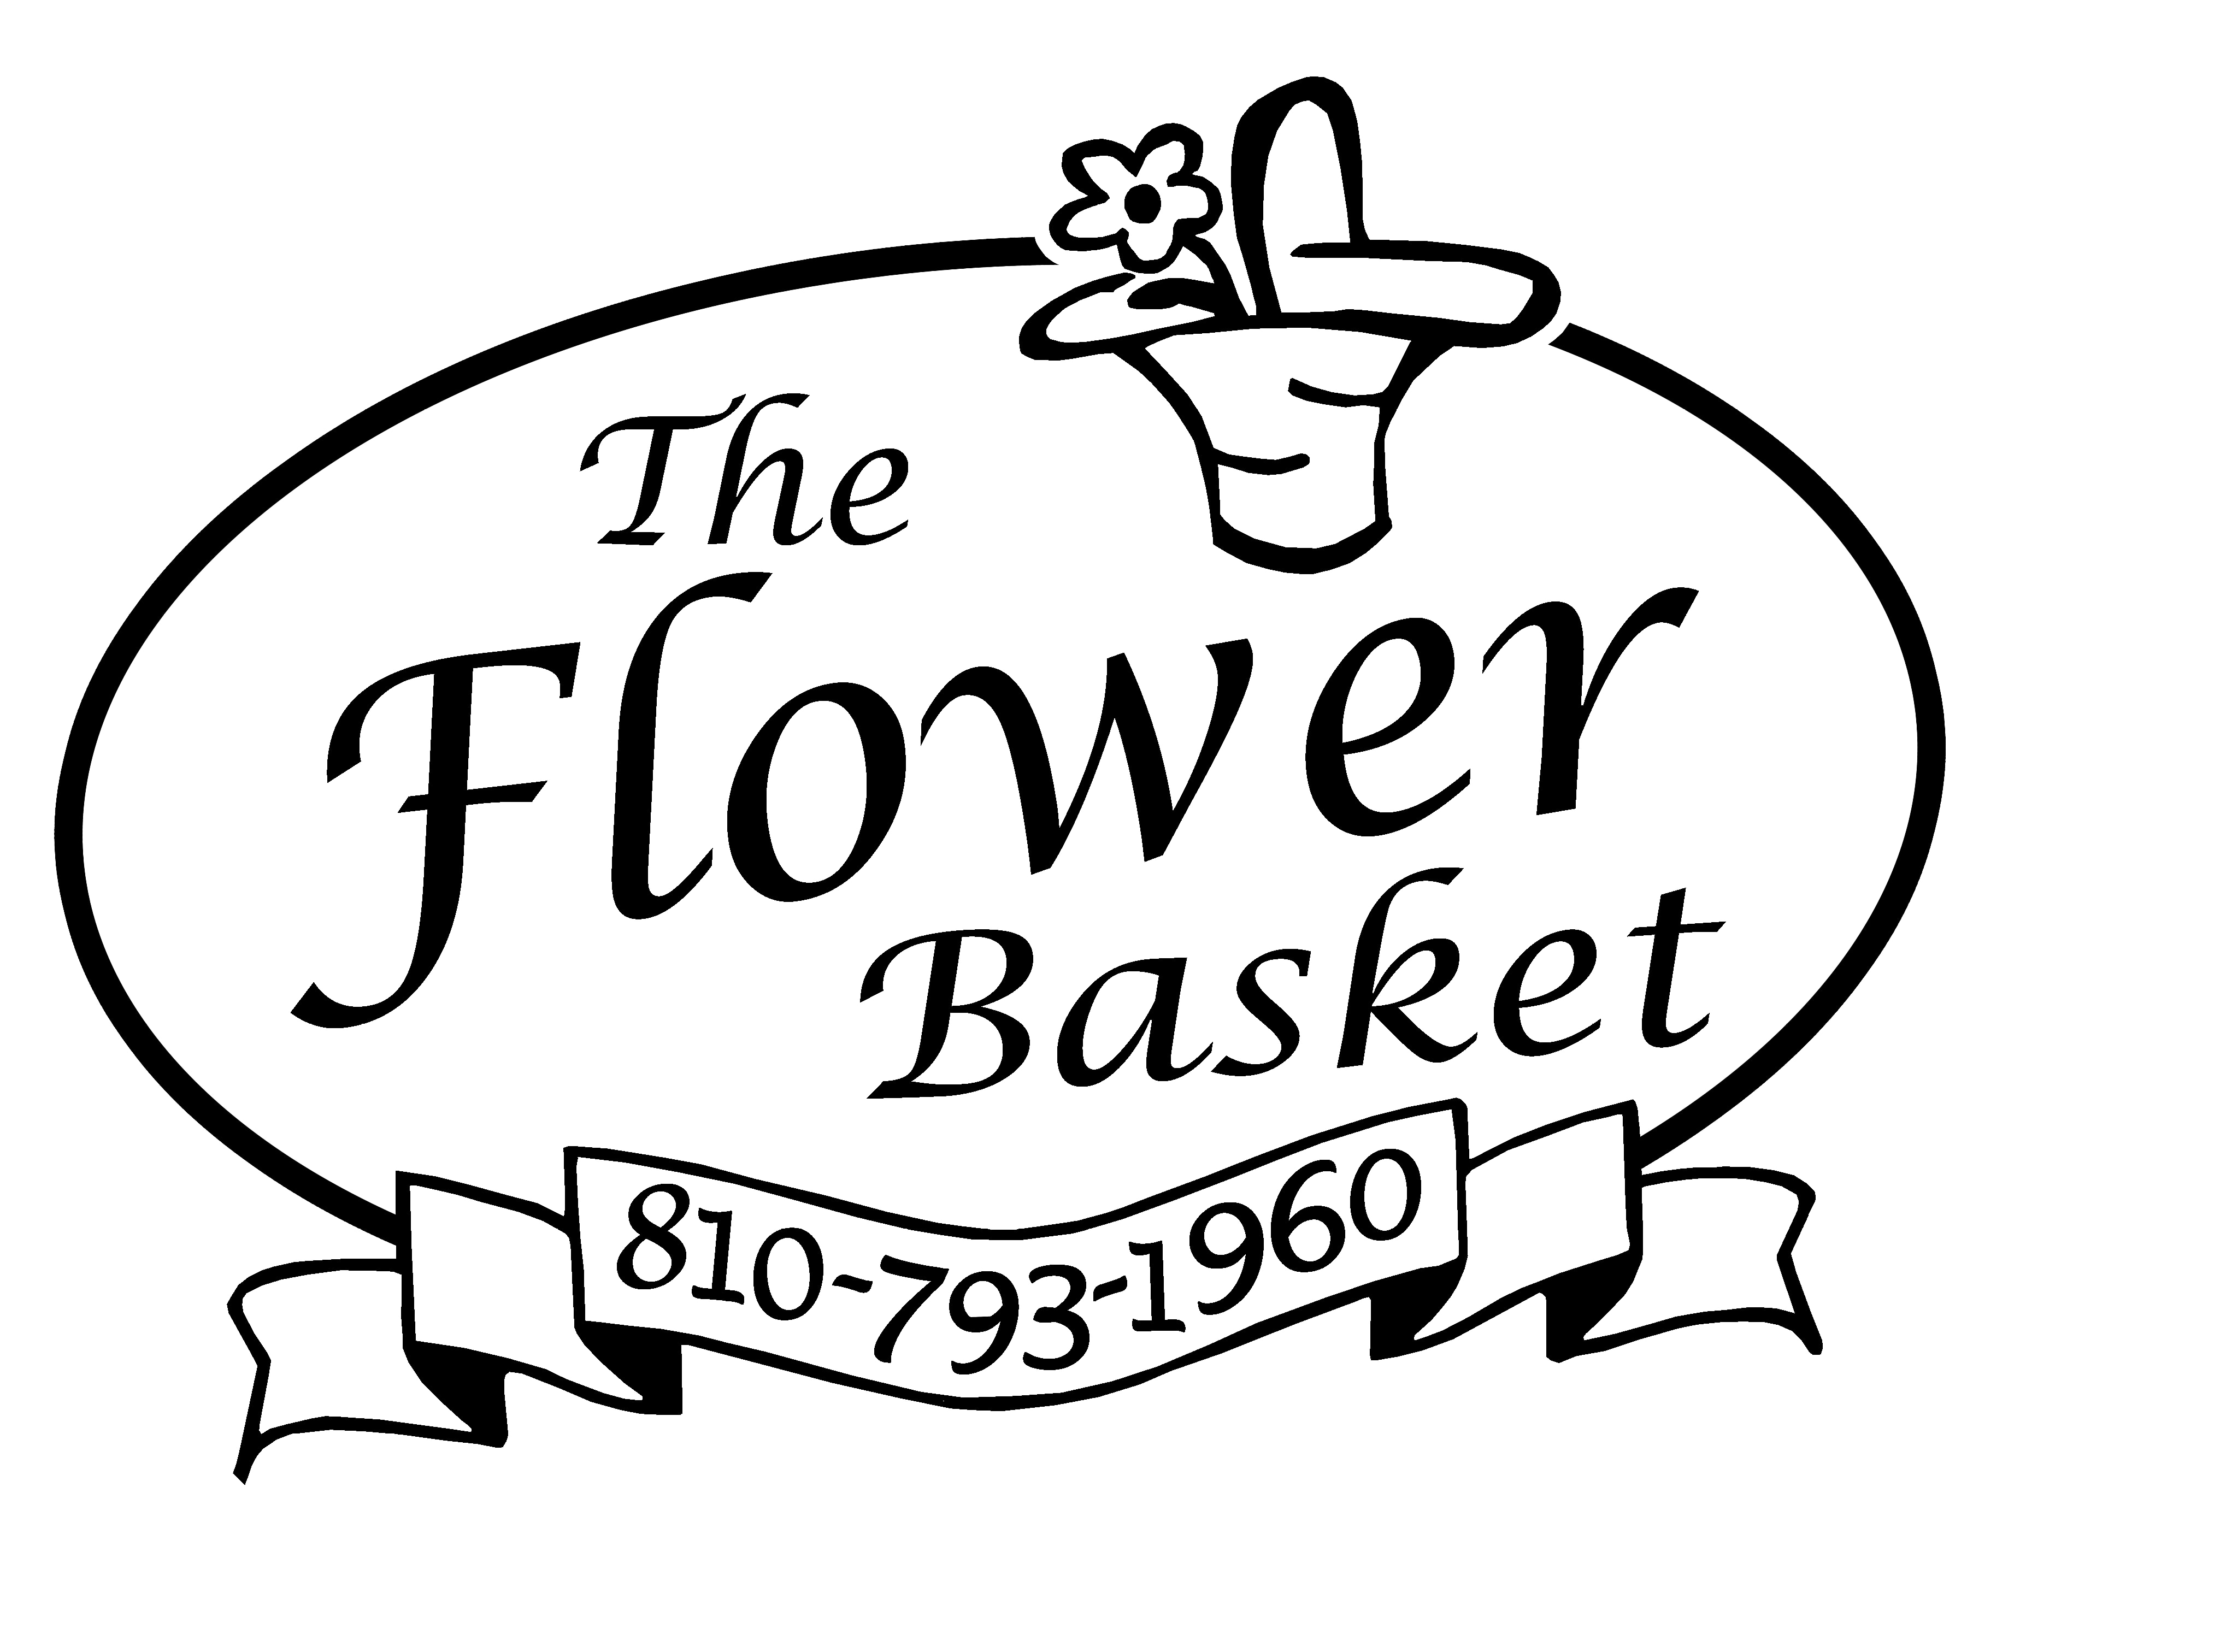 Buy Sympathy And Funeral Flowers From The Flower Basket